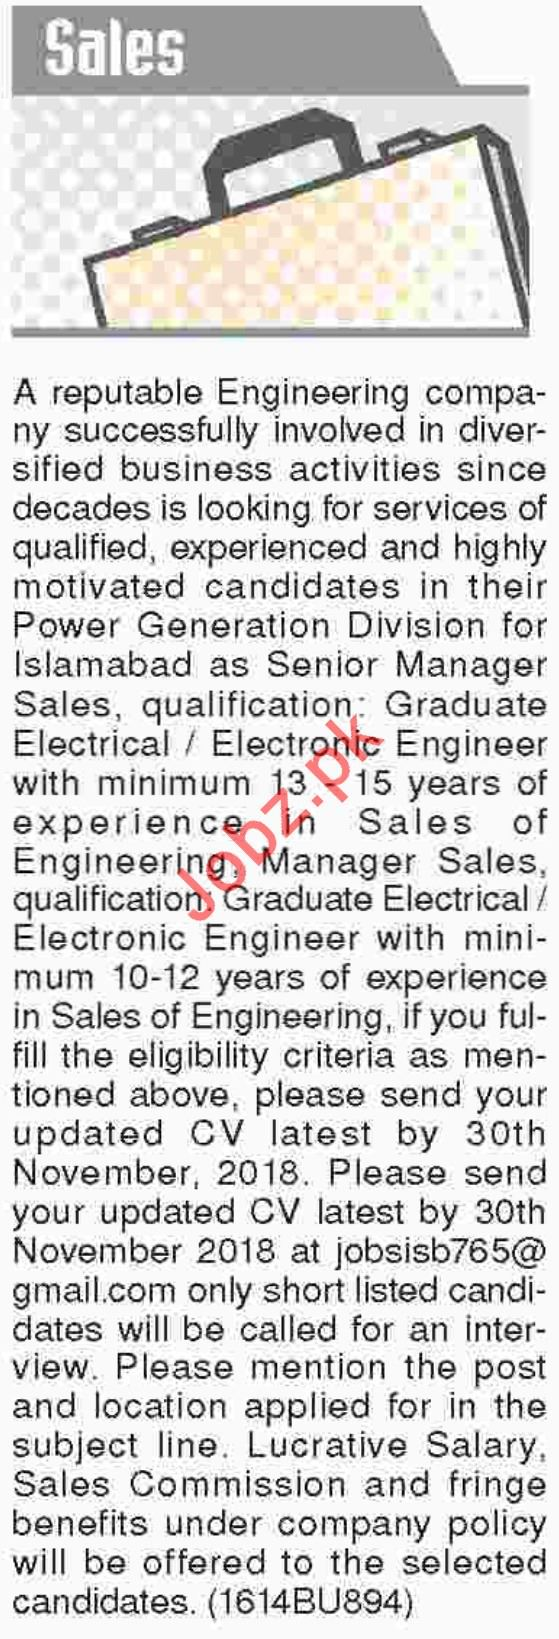 Dawn Sunday Newspaper Classified Sales Jobs 2018